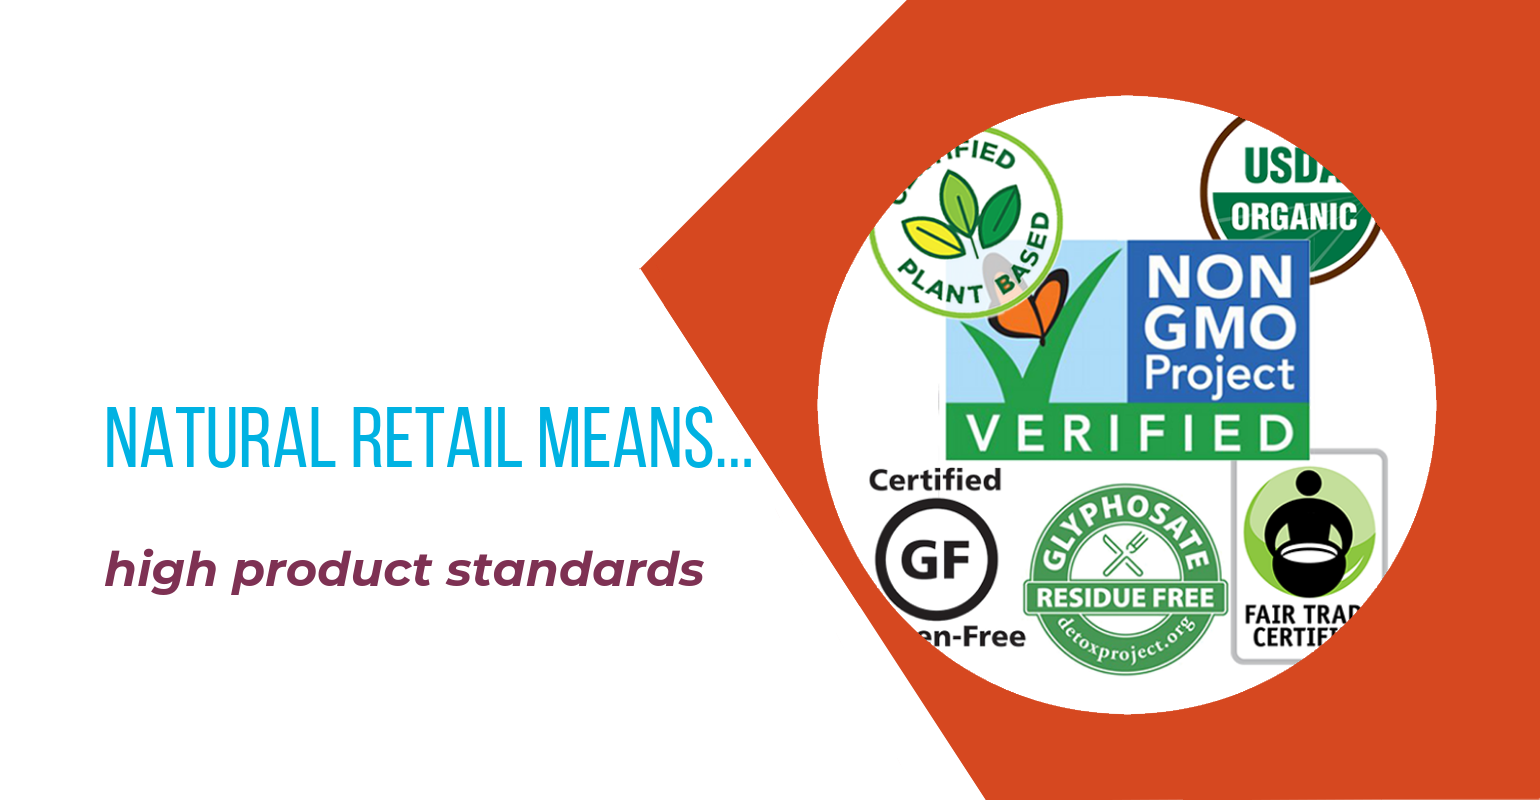 Natural retail means high product standards